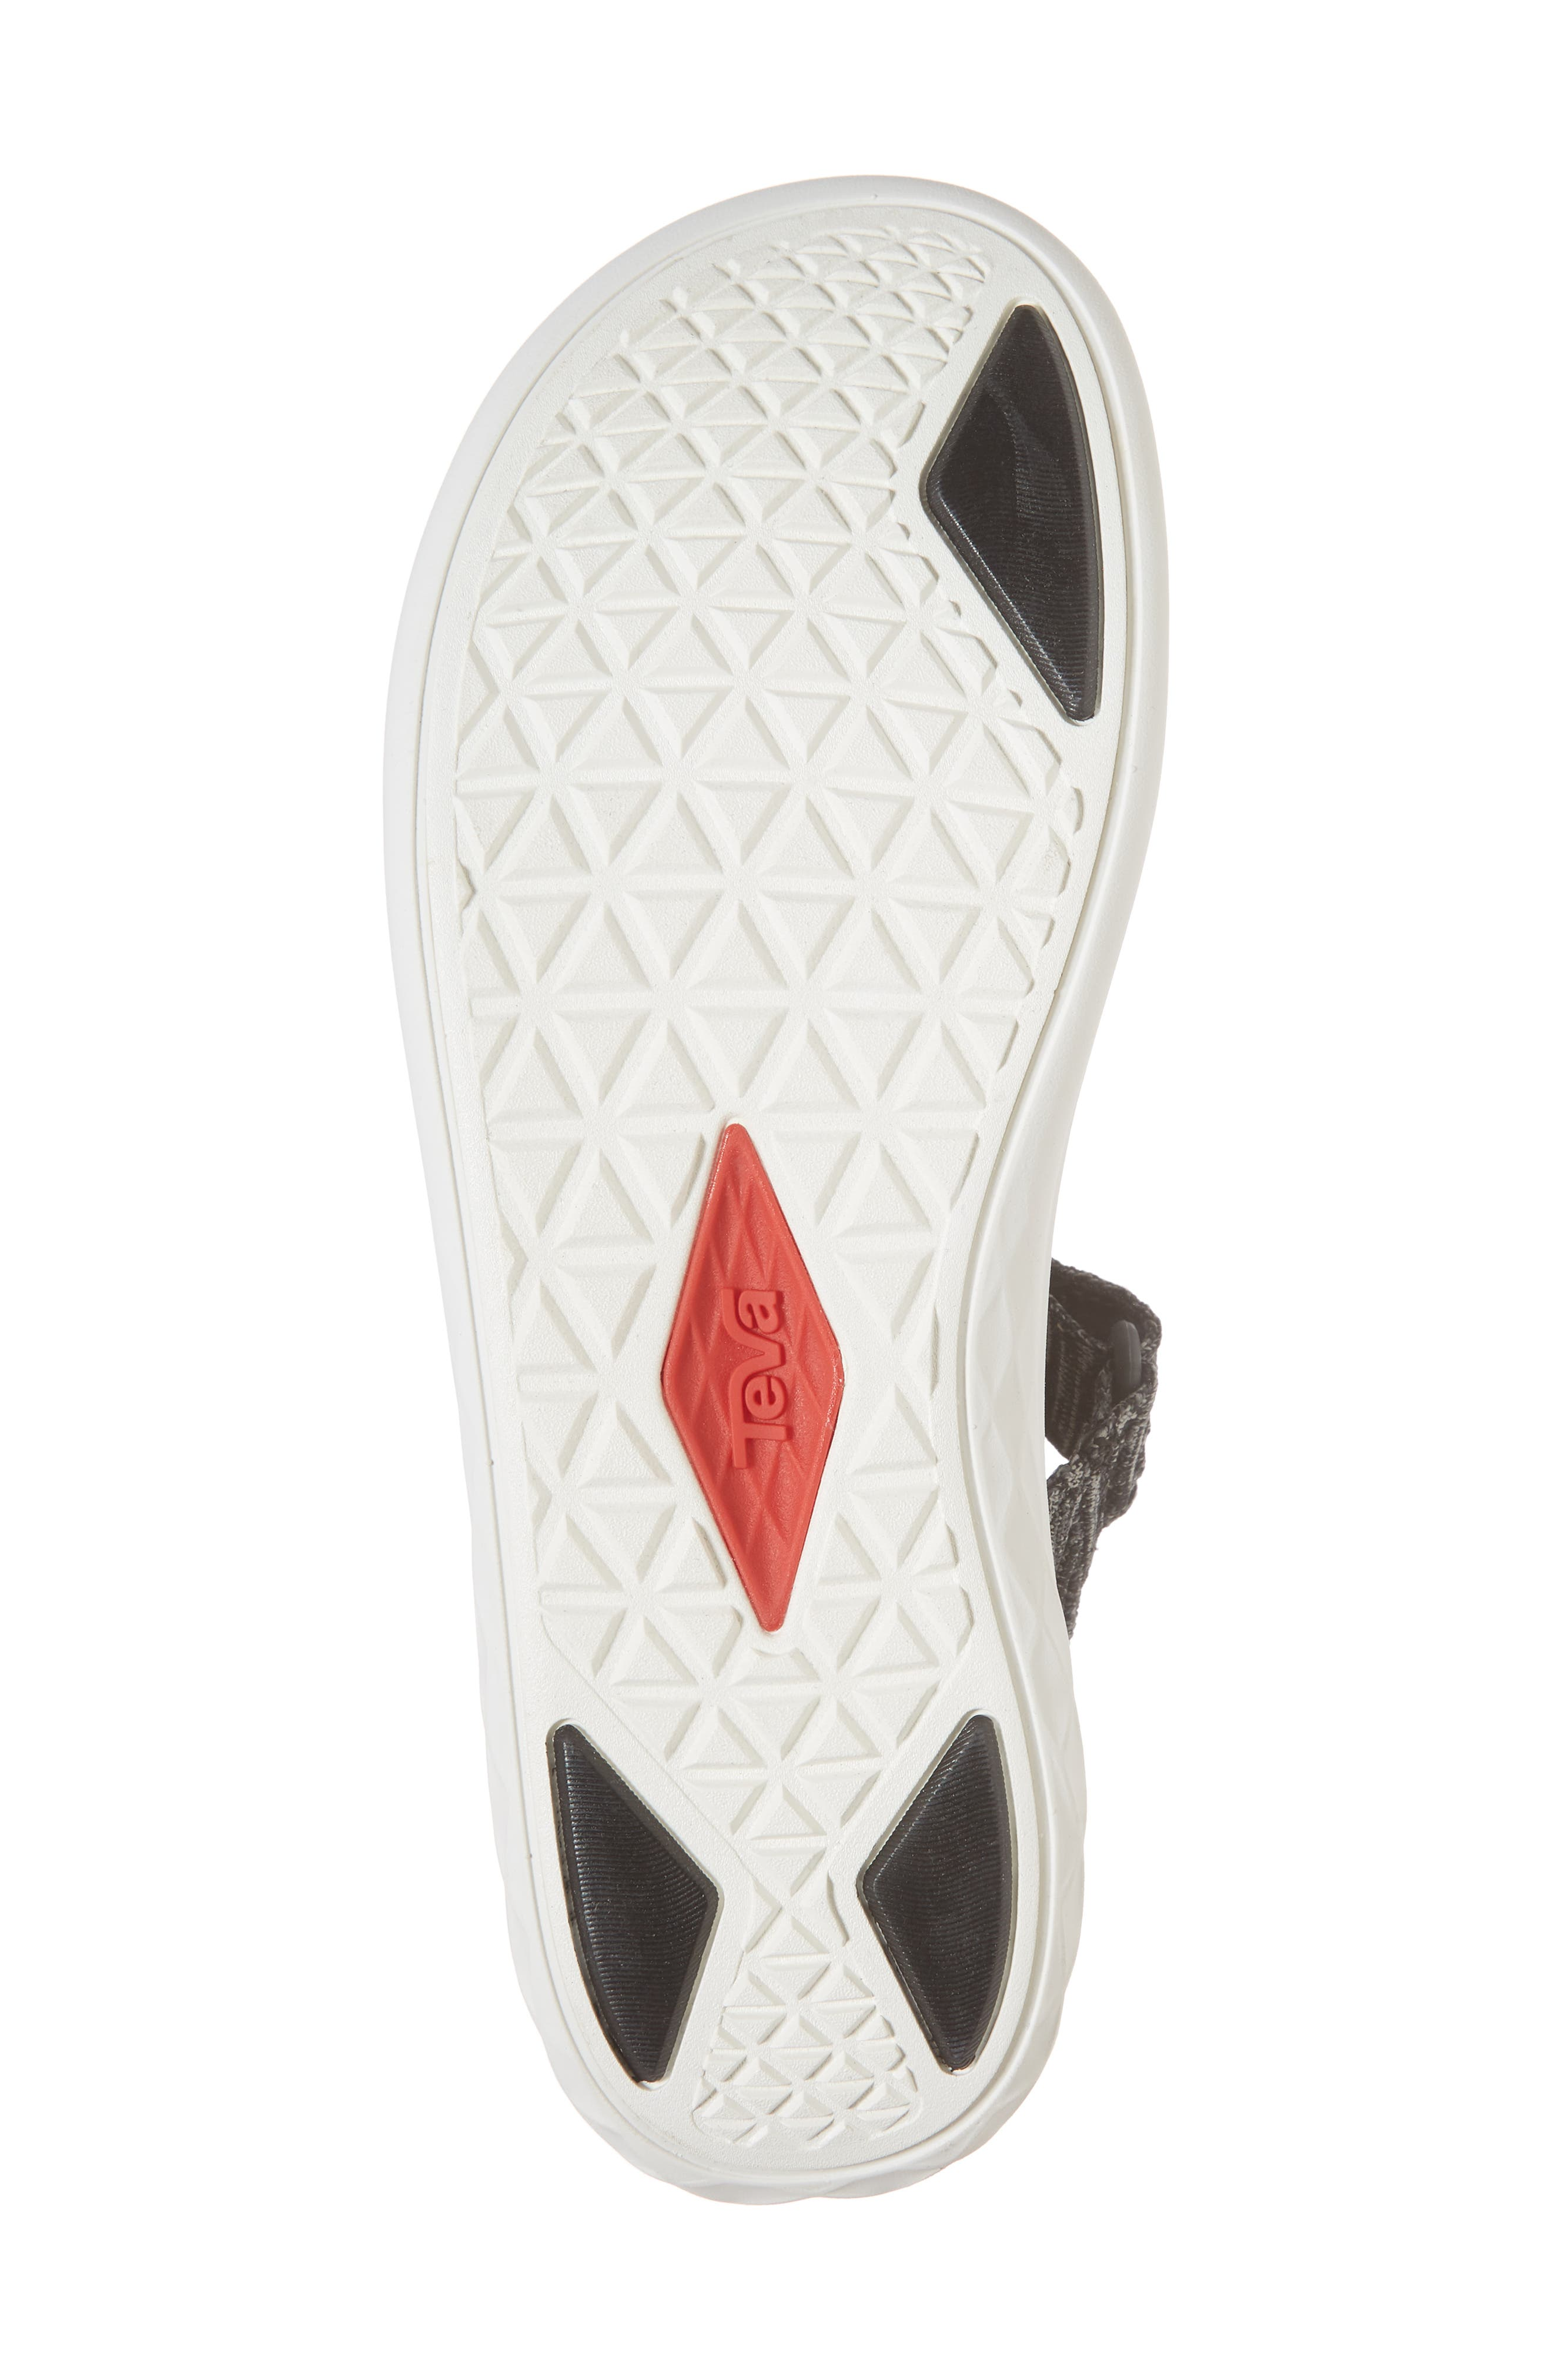 Terra Float 2 Sandal,                             Alternate thumbnail 6, color,                             001